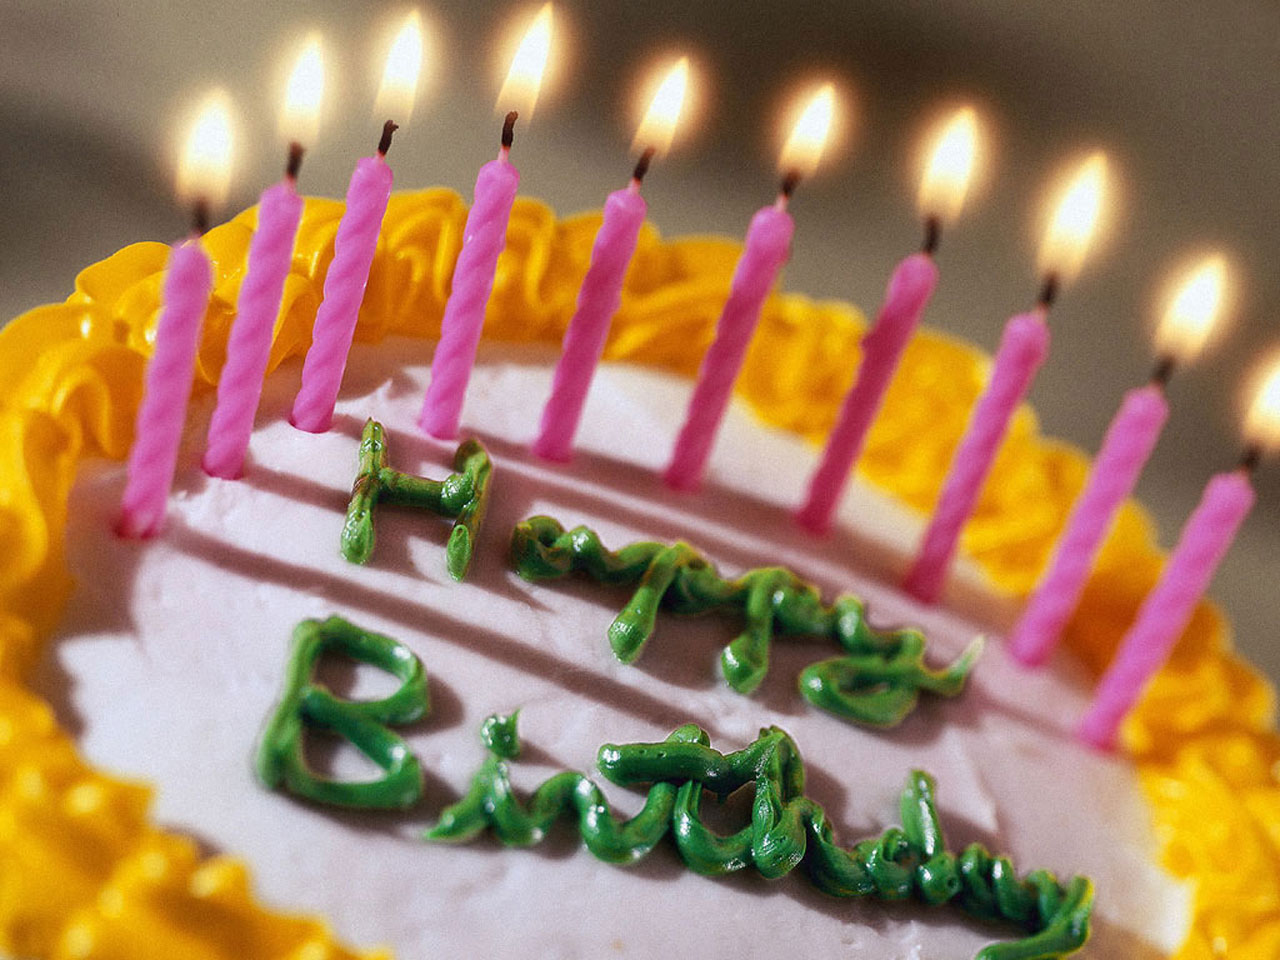 Wallpapers Backgrounds Happy Birthday Cake And Candles Wallpaper